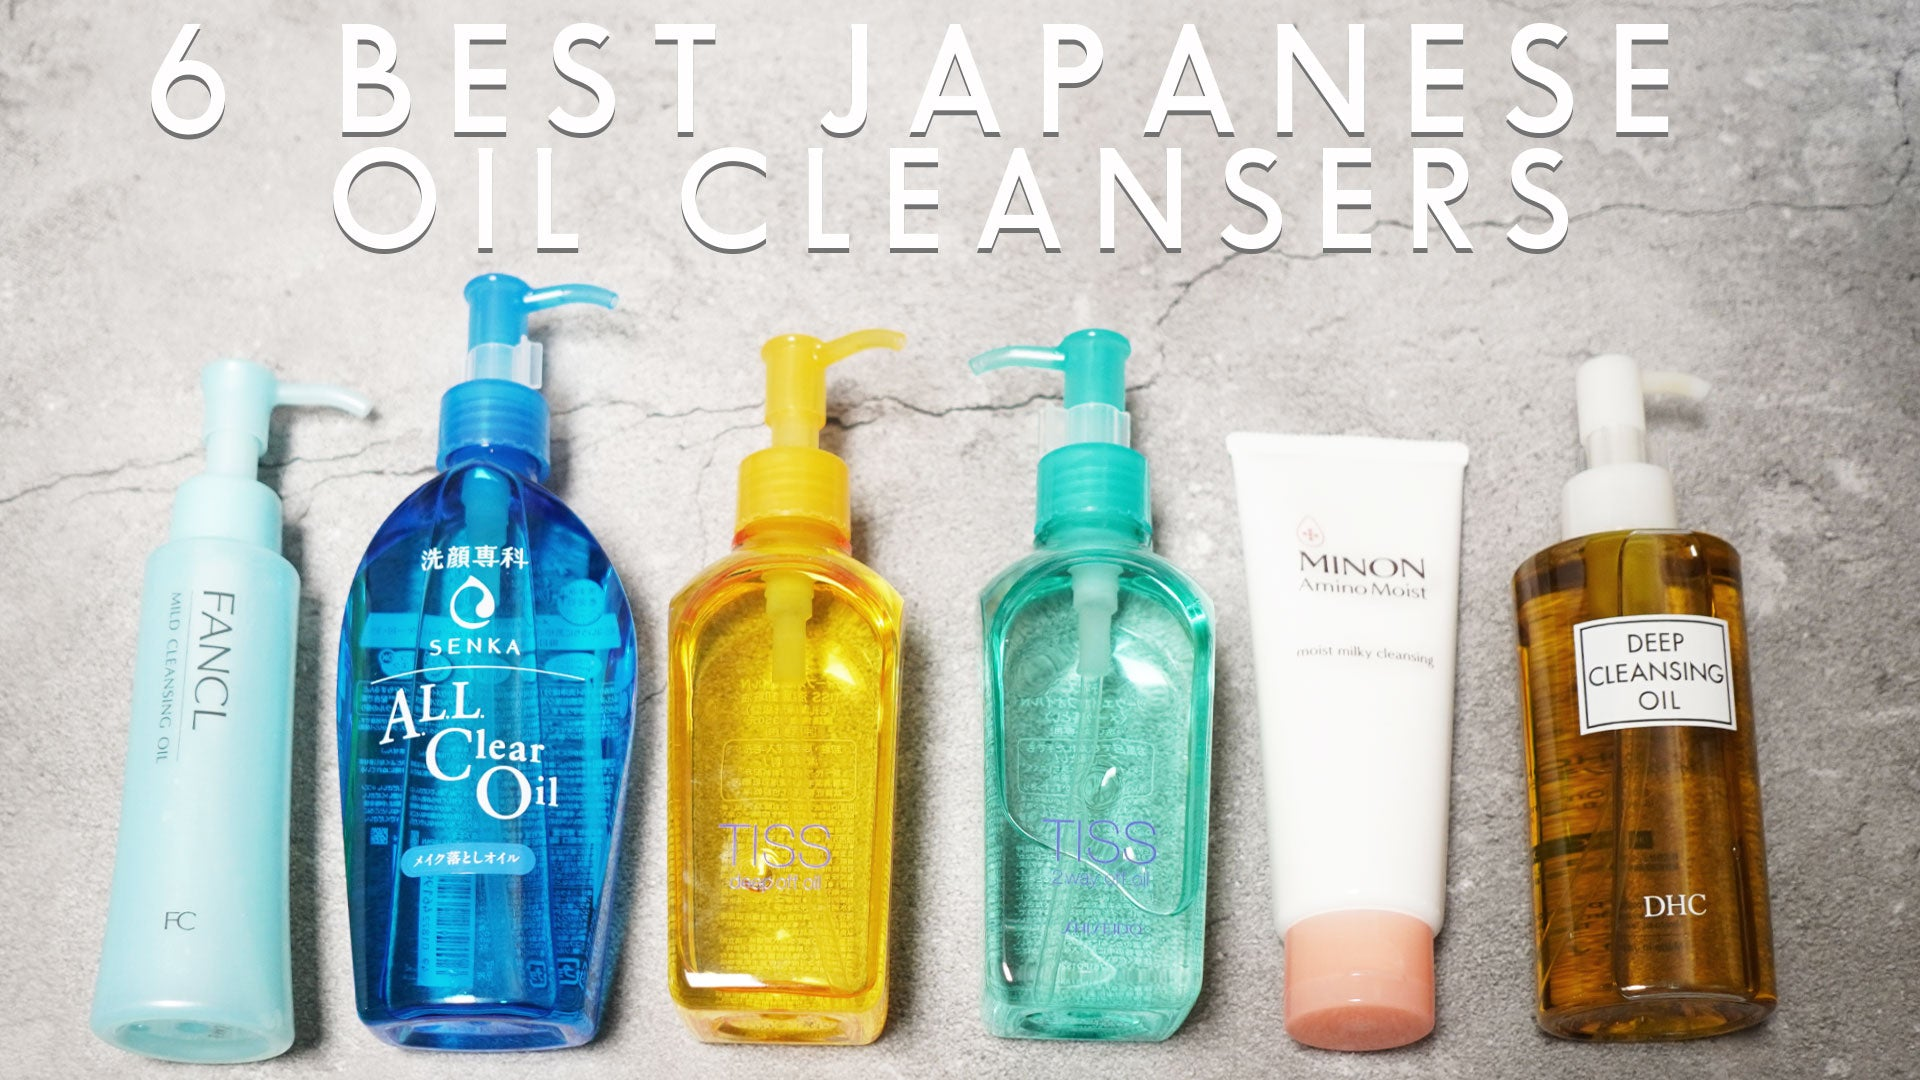 6 of the Best Japanese Cleansing Oils in 2020